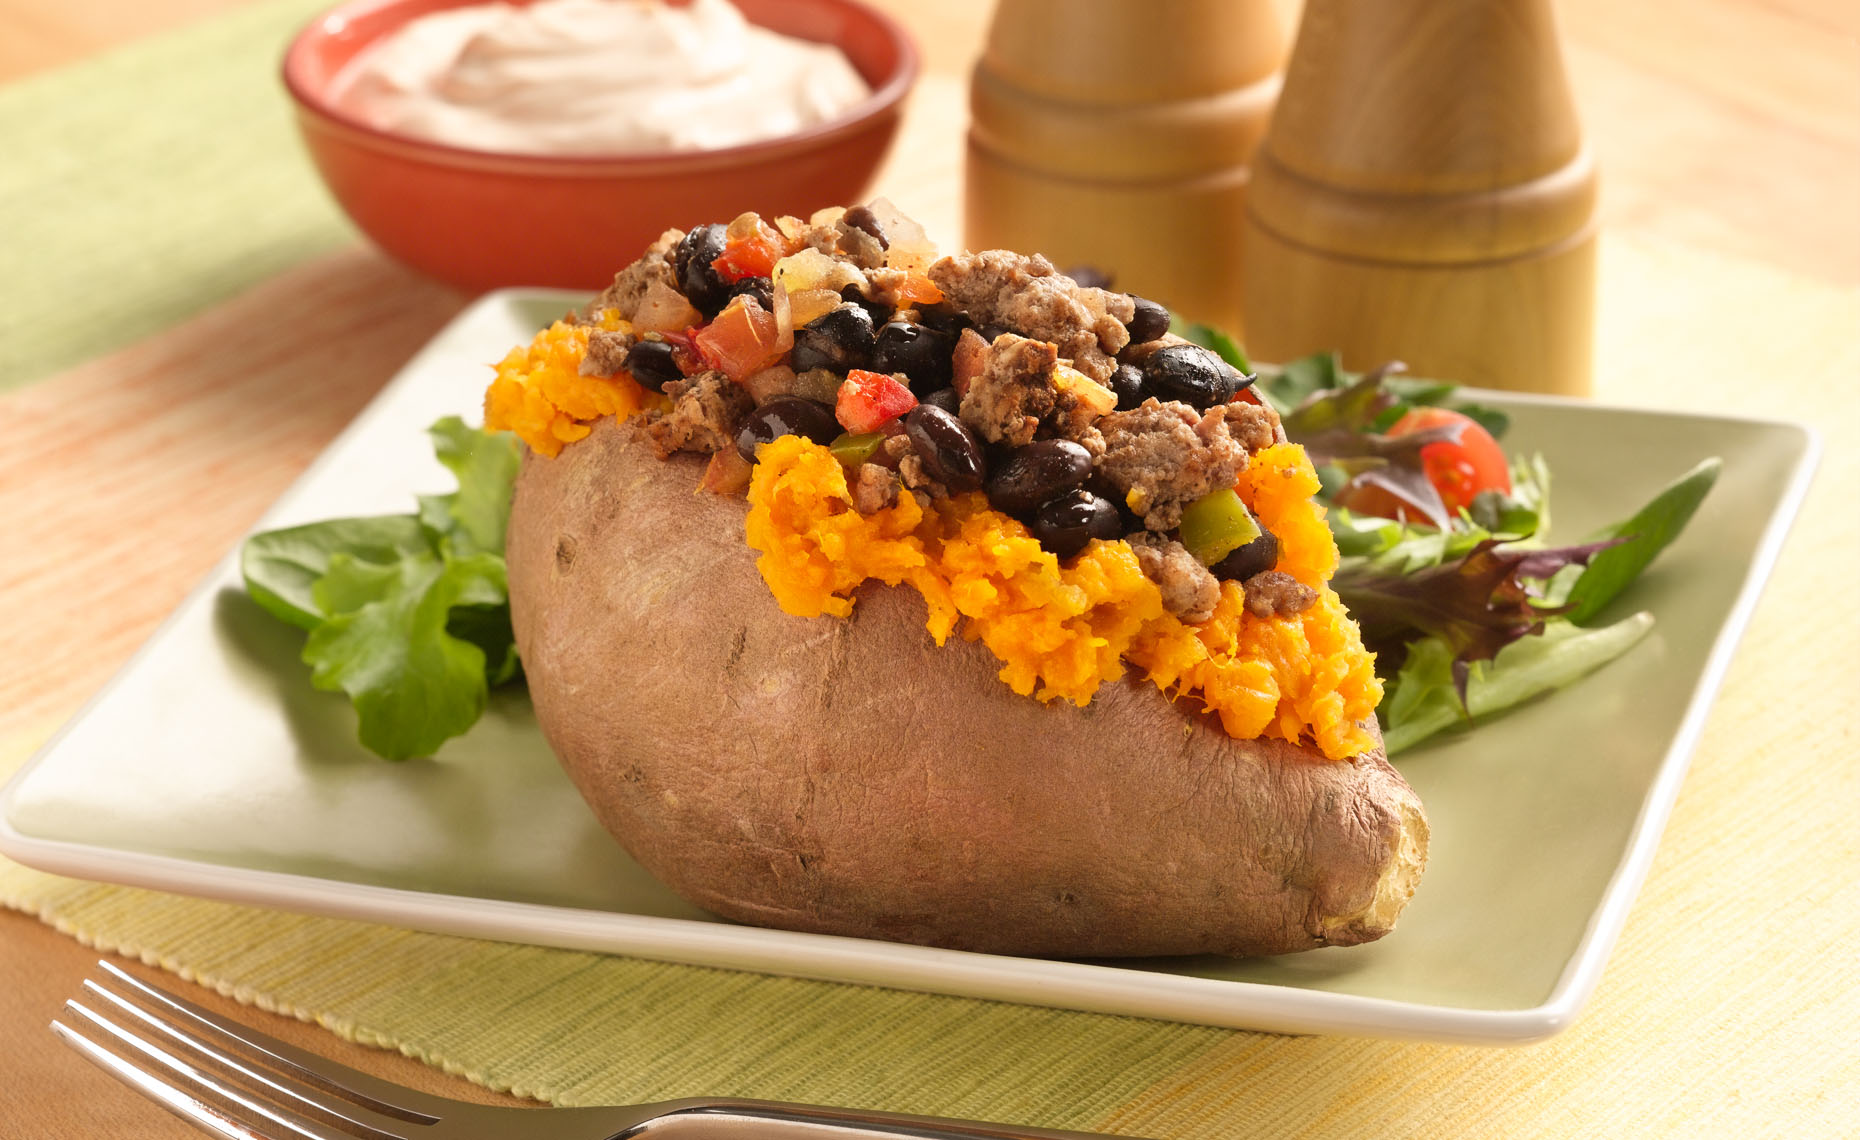 Stuffed Sweet Potato Food Photo